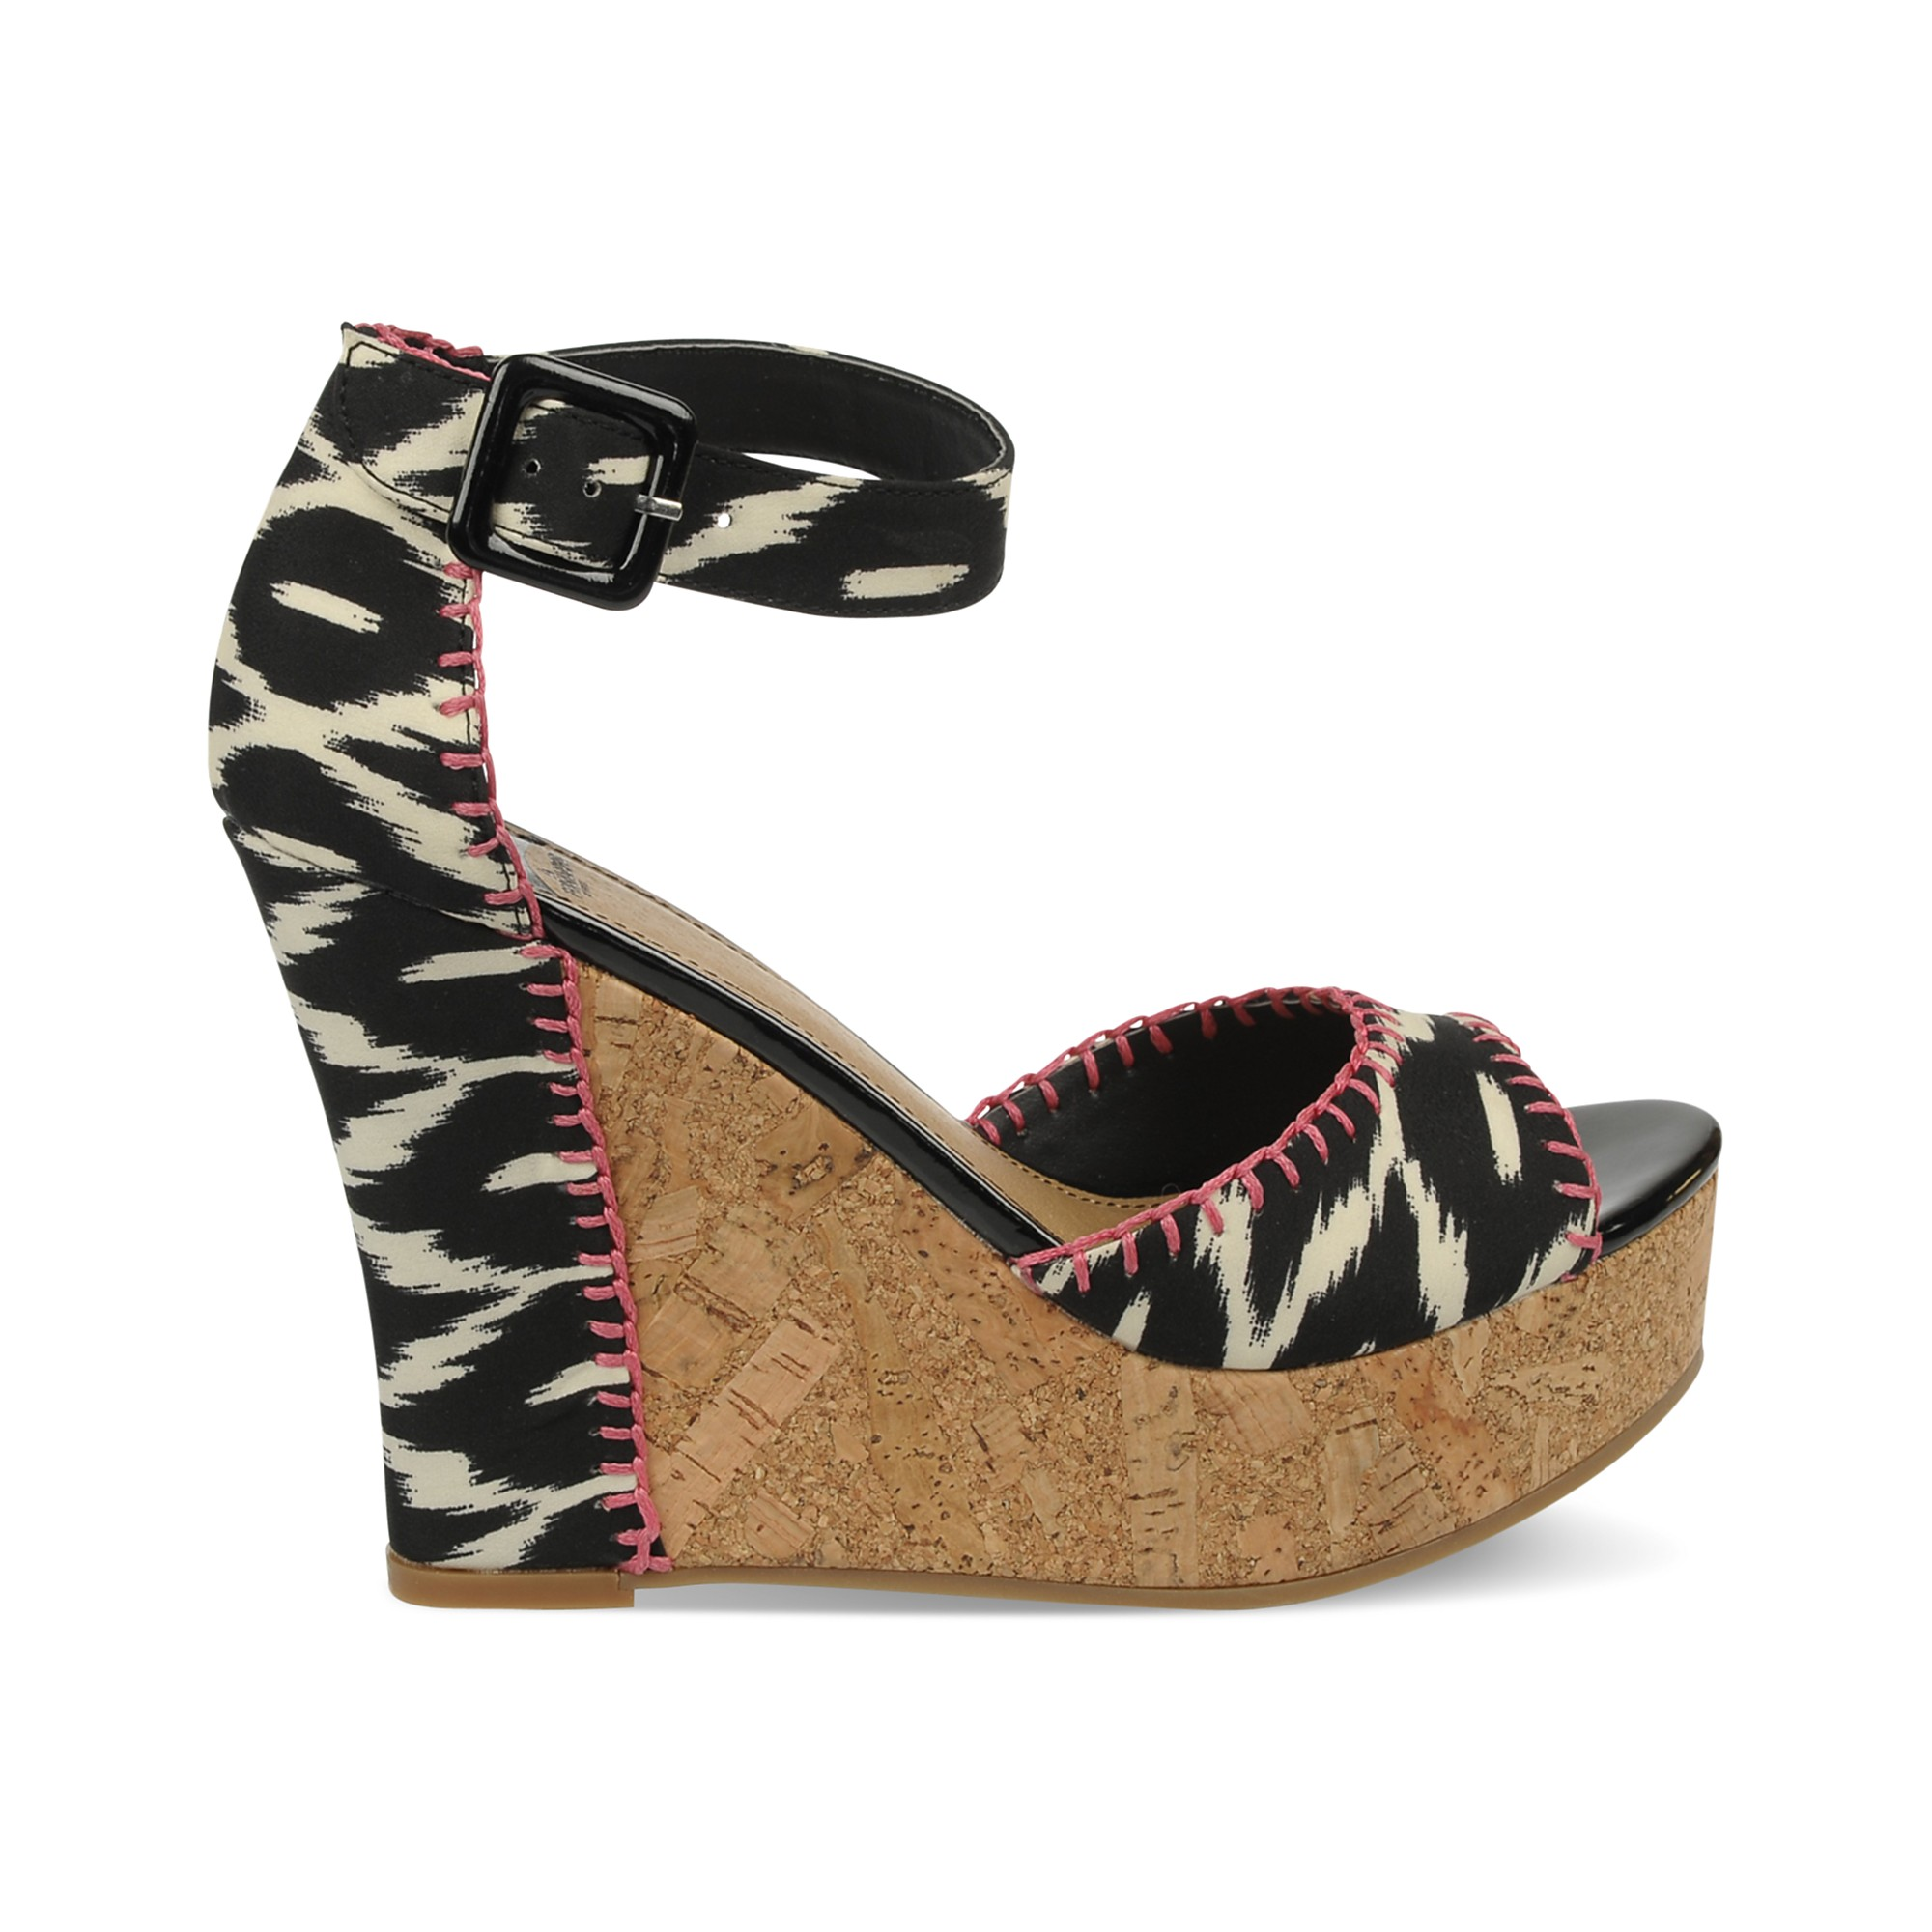 Fergie Fergalicious Shoes Quiztime Platform Wedge Sandals